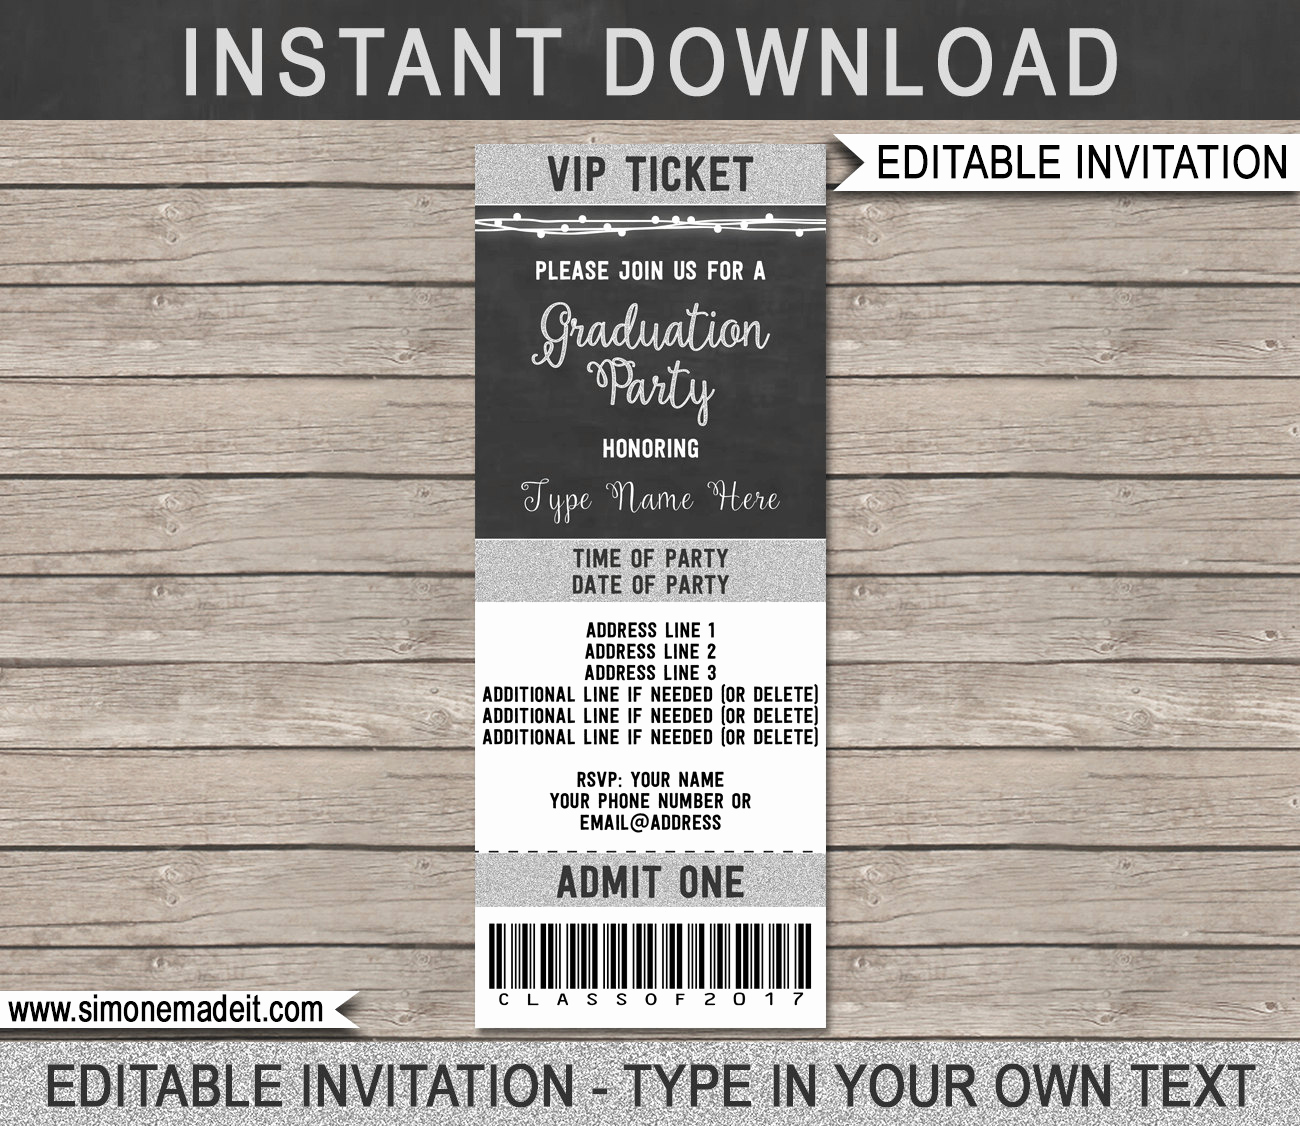 Admit One Ticket Invitation Template Lovely Graduation Ticket Invitation Template Class Of 2017 Silver